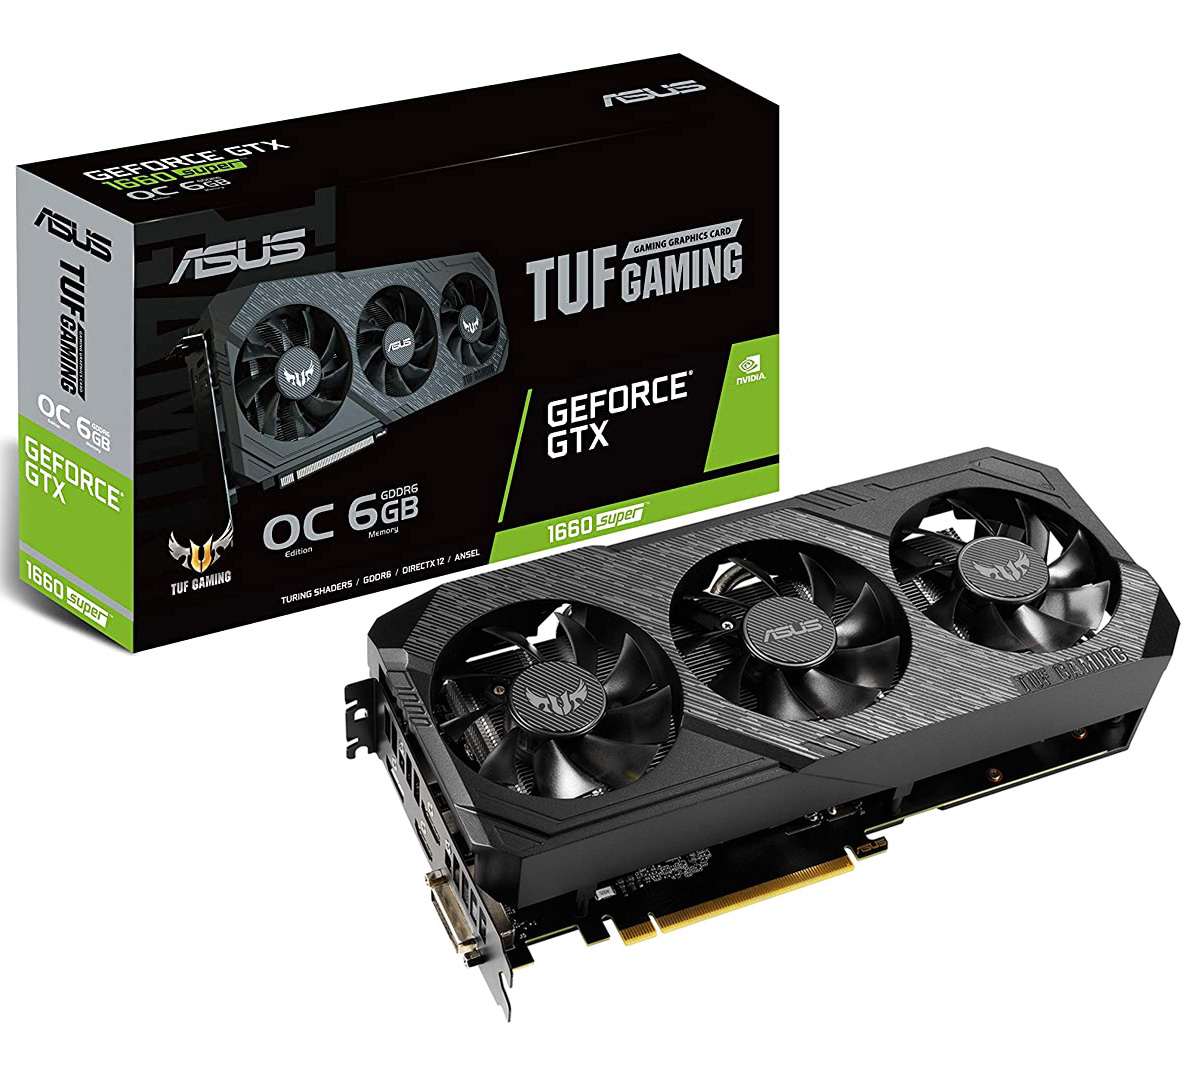 ASUS GeForce GTX 1660 Super TUF Gaming X3 OC 6GB